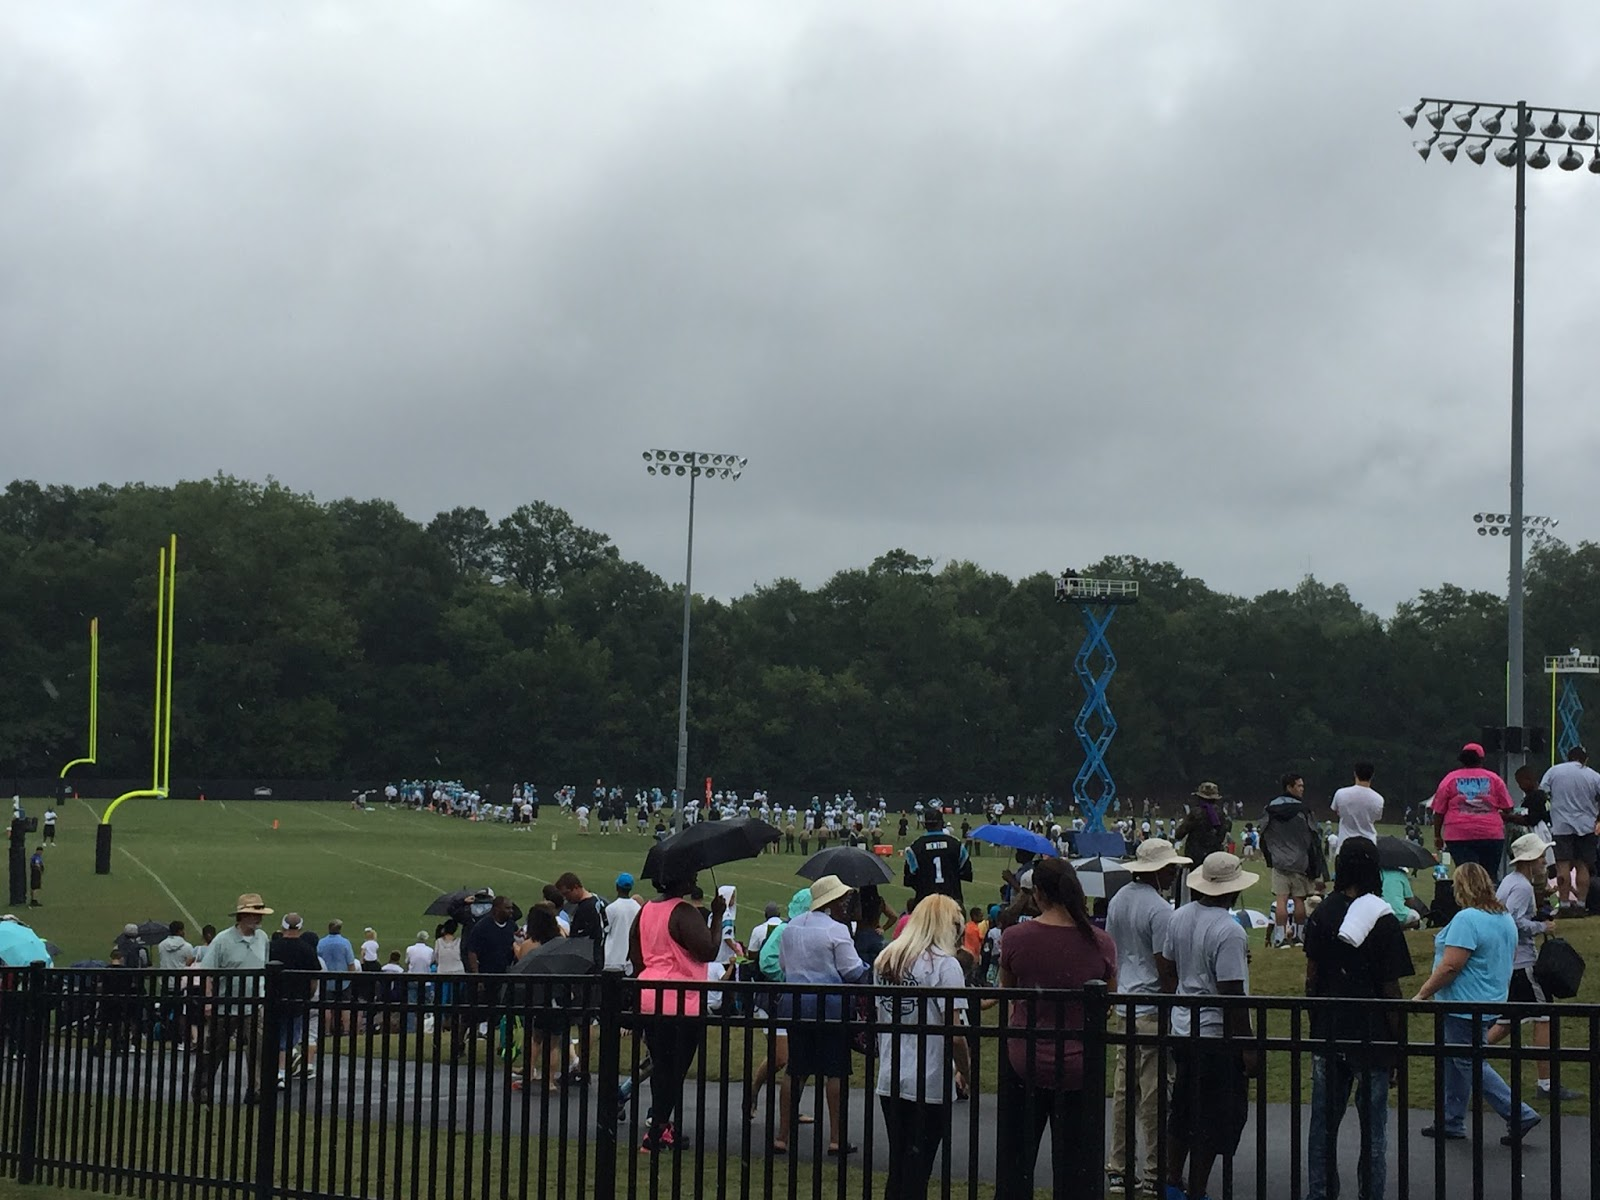 Gloria in excelsis deo carolina panthers training camp 2016 i had never been to the training camp before and was worried about crowd size when chris told me hed searched on the internet and learned that 20000 fans publicscrutiny Images